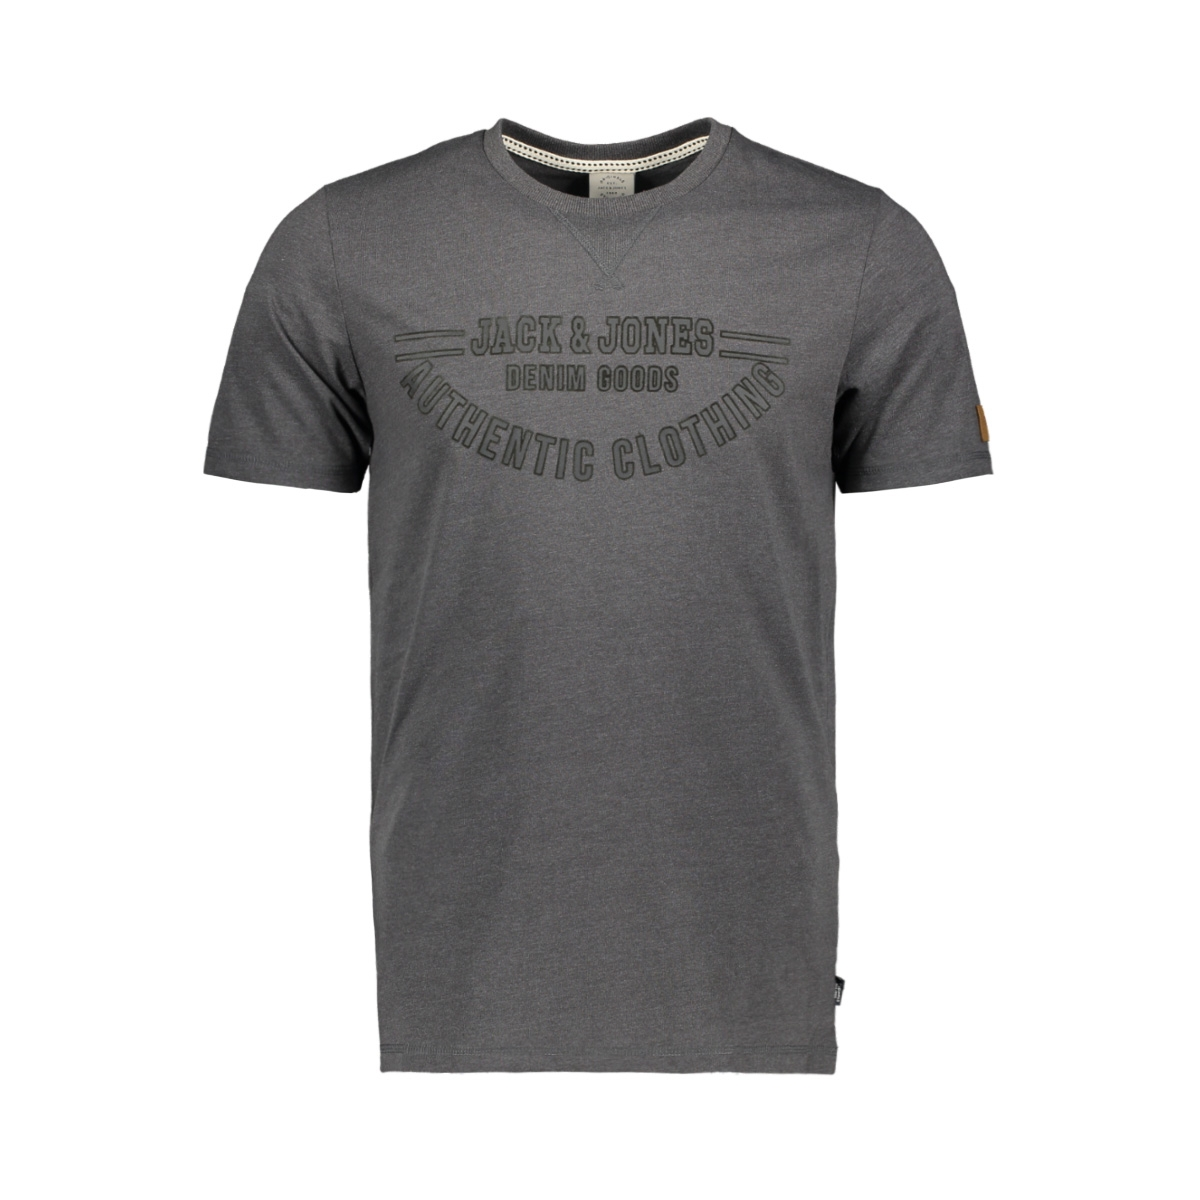 jordenver tee ss crew neck 12145919 jack & jones t-shirt dark grey melange